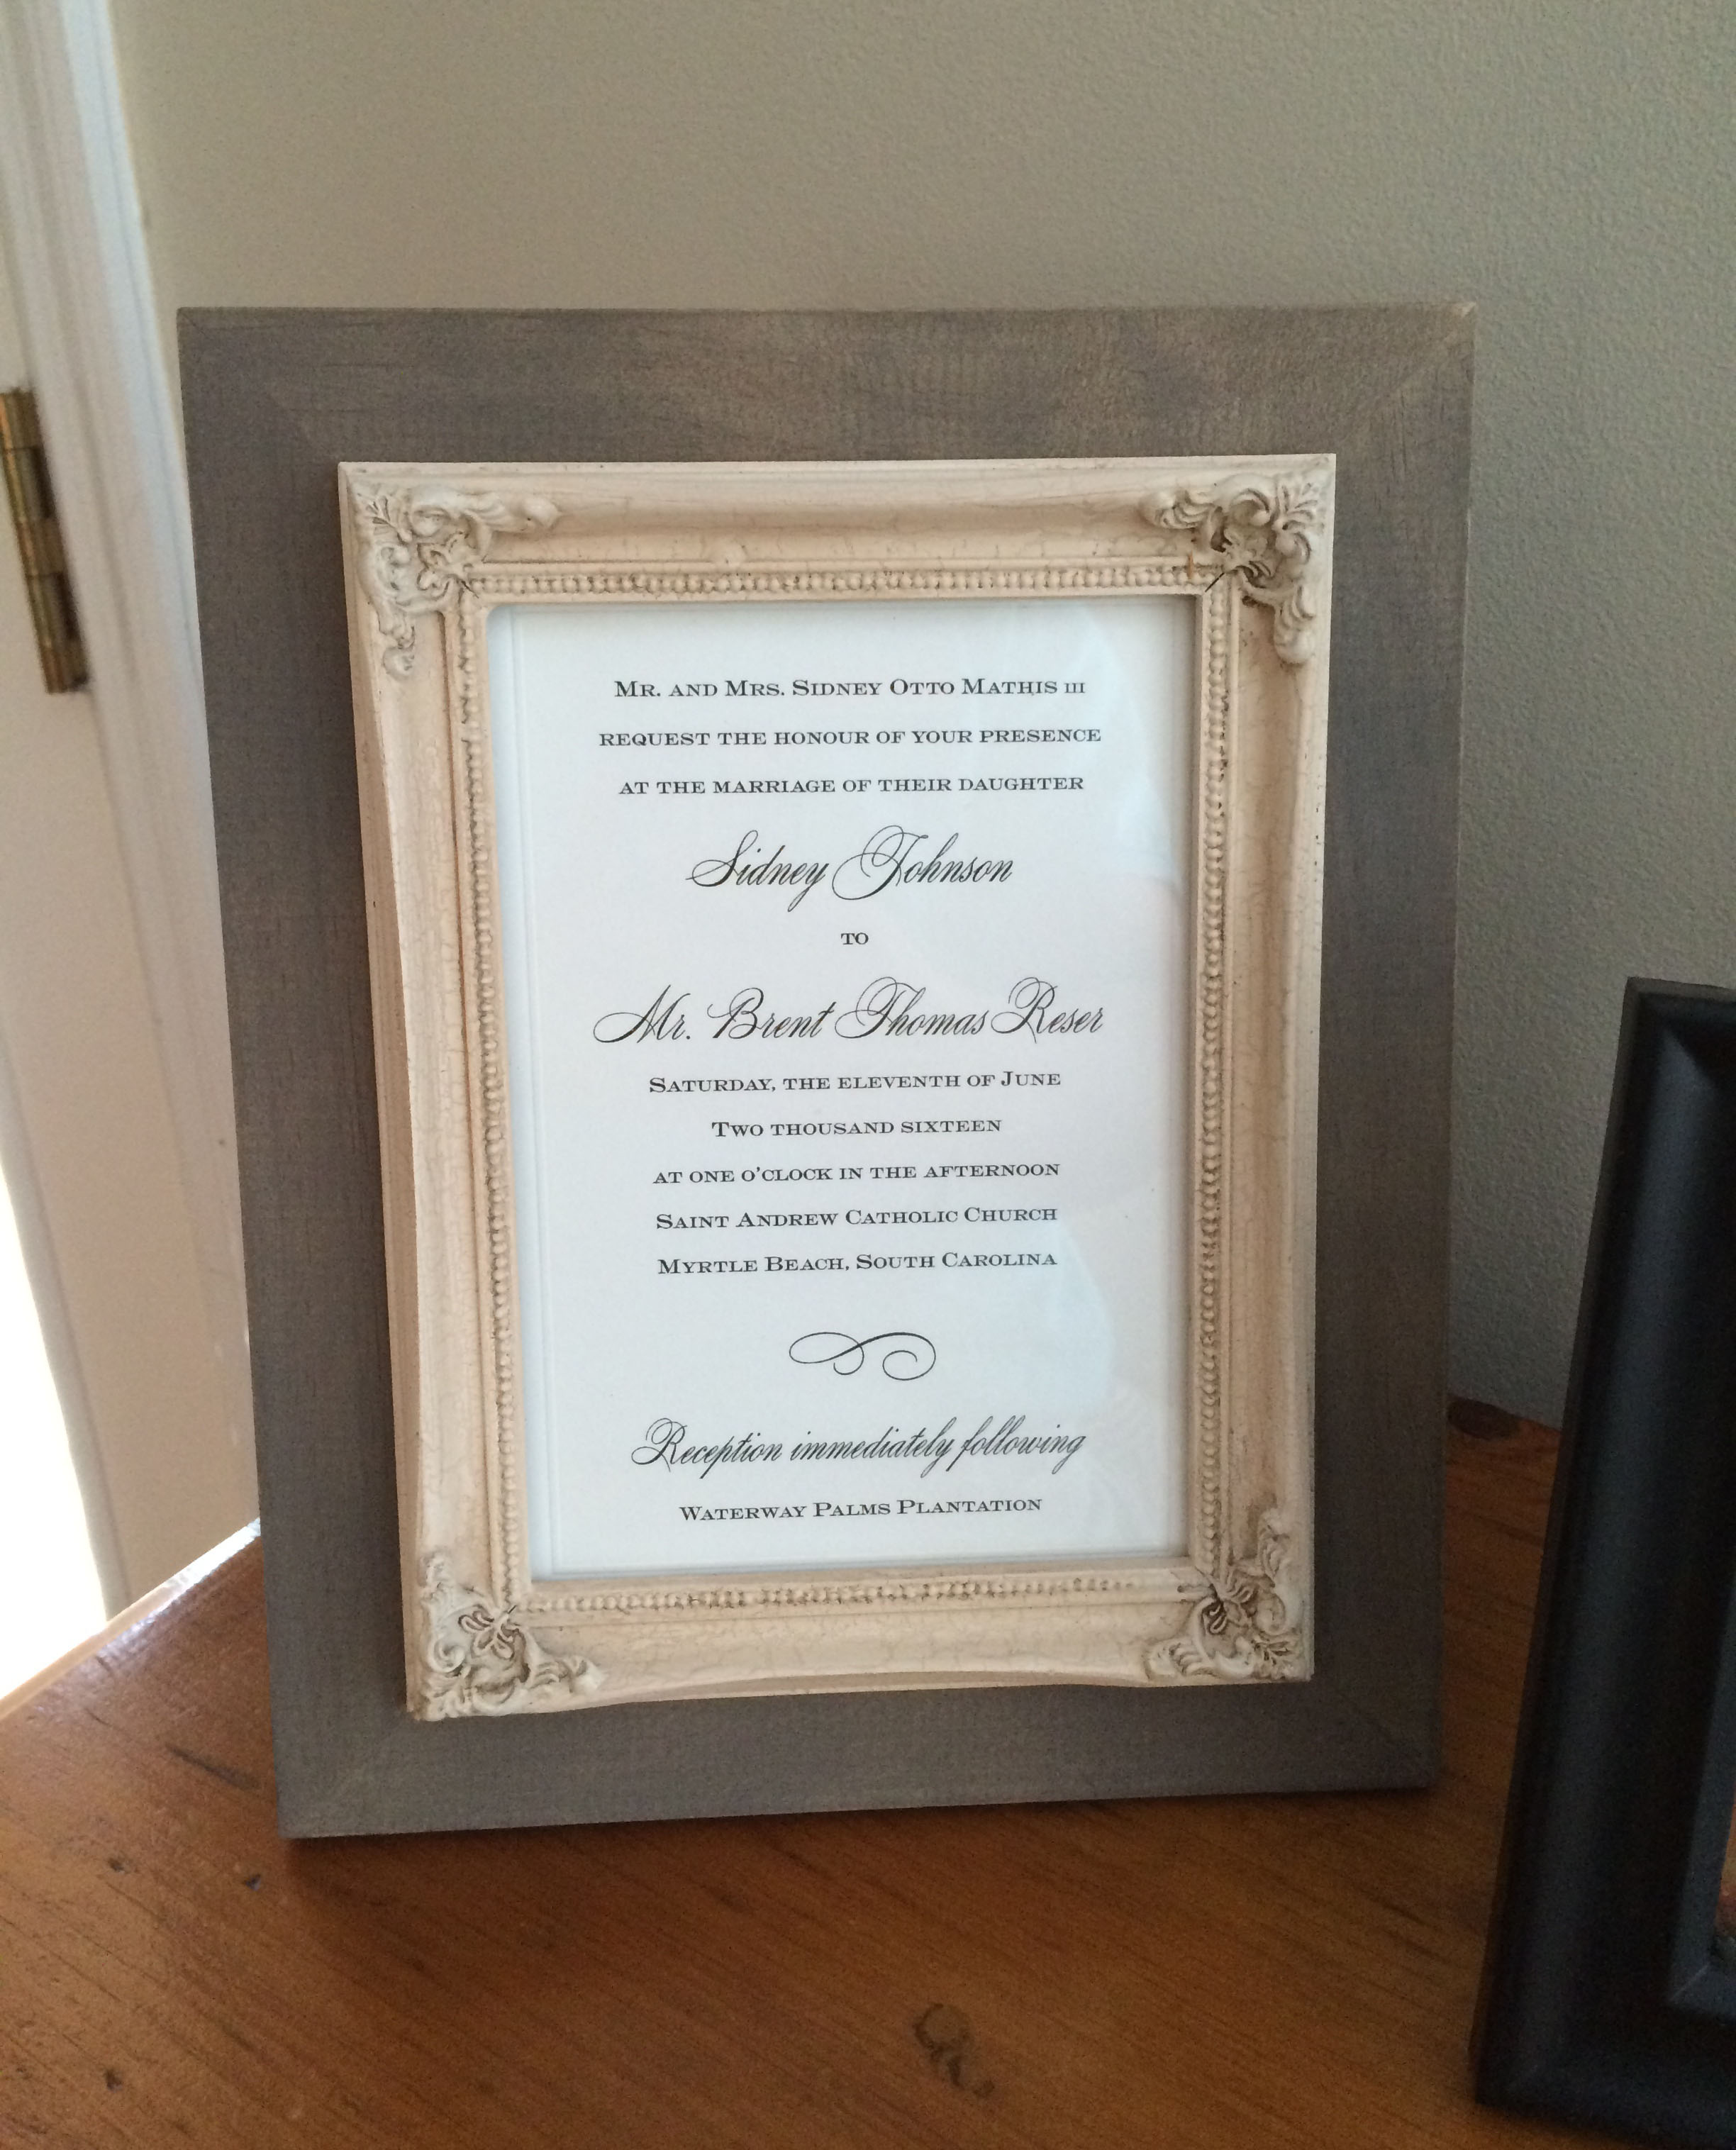 I received this from my parents. It is so nice to have a framed wedding invitation! Thank you to my parents.